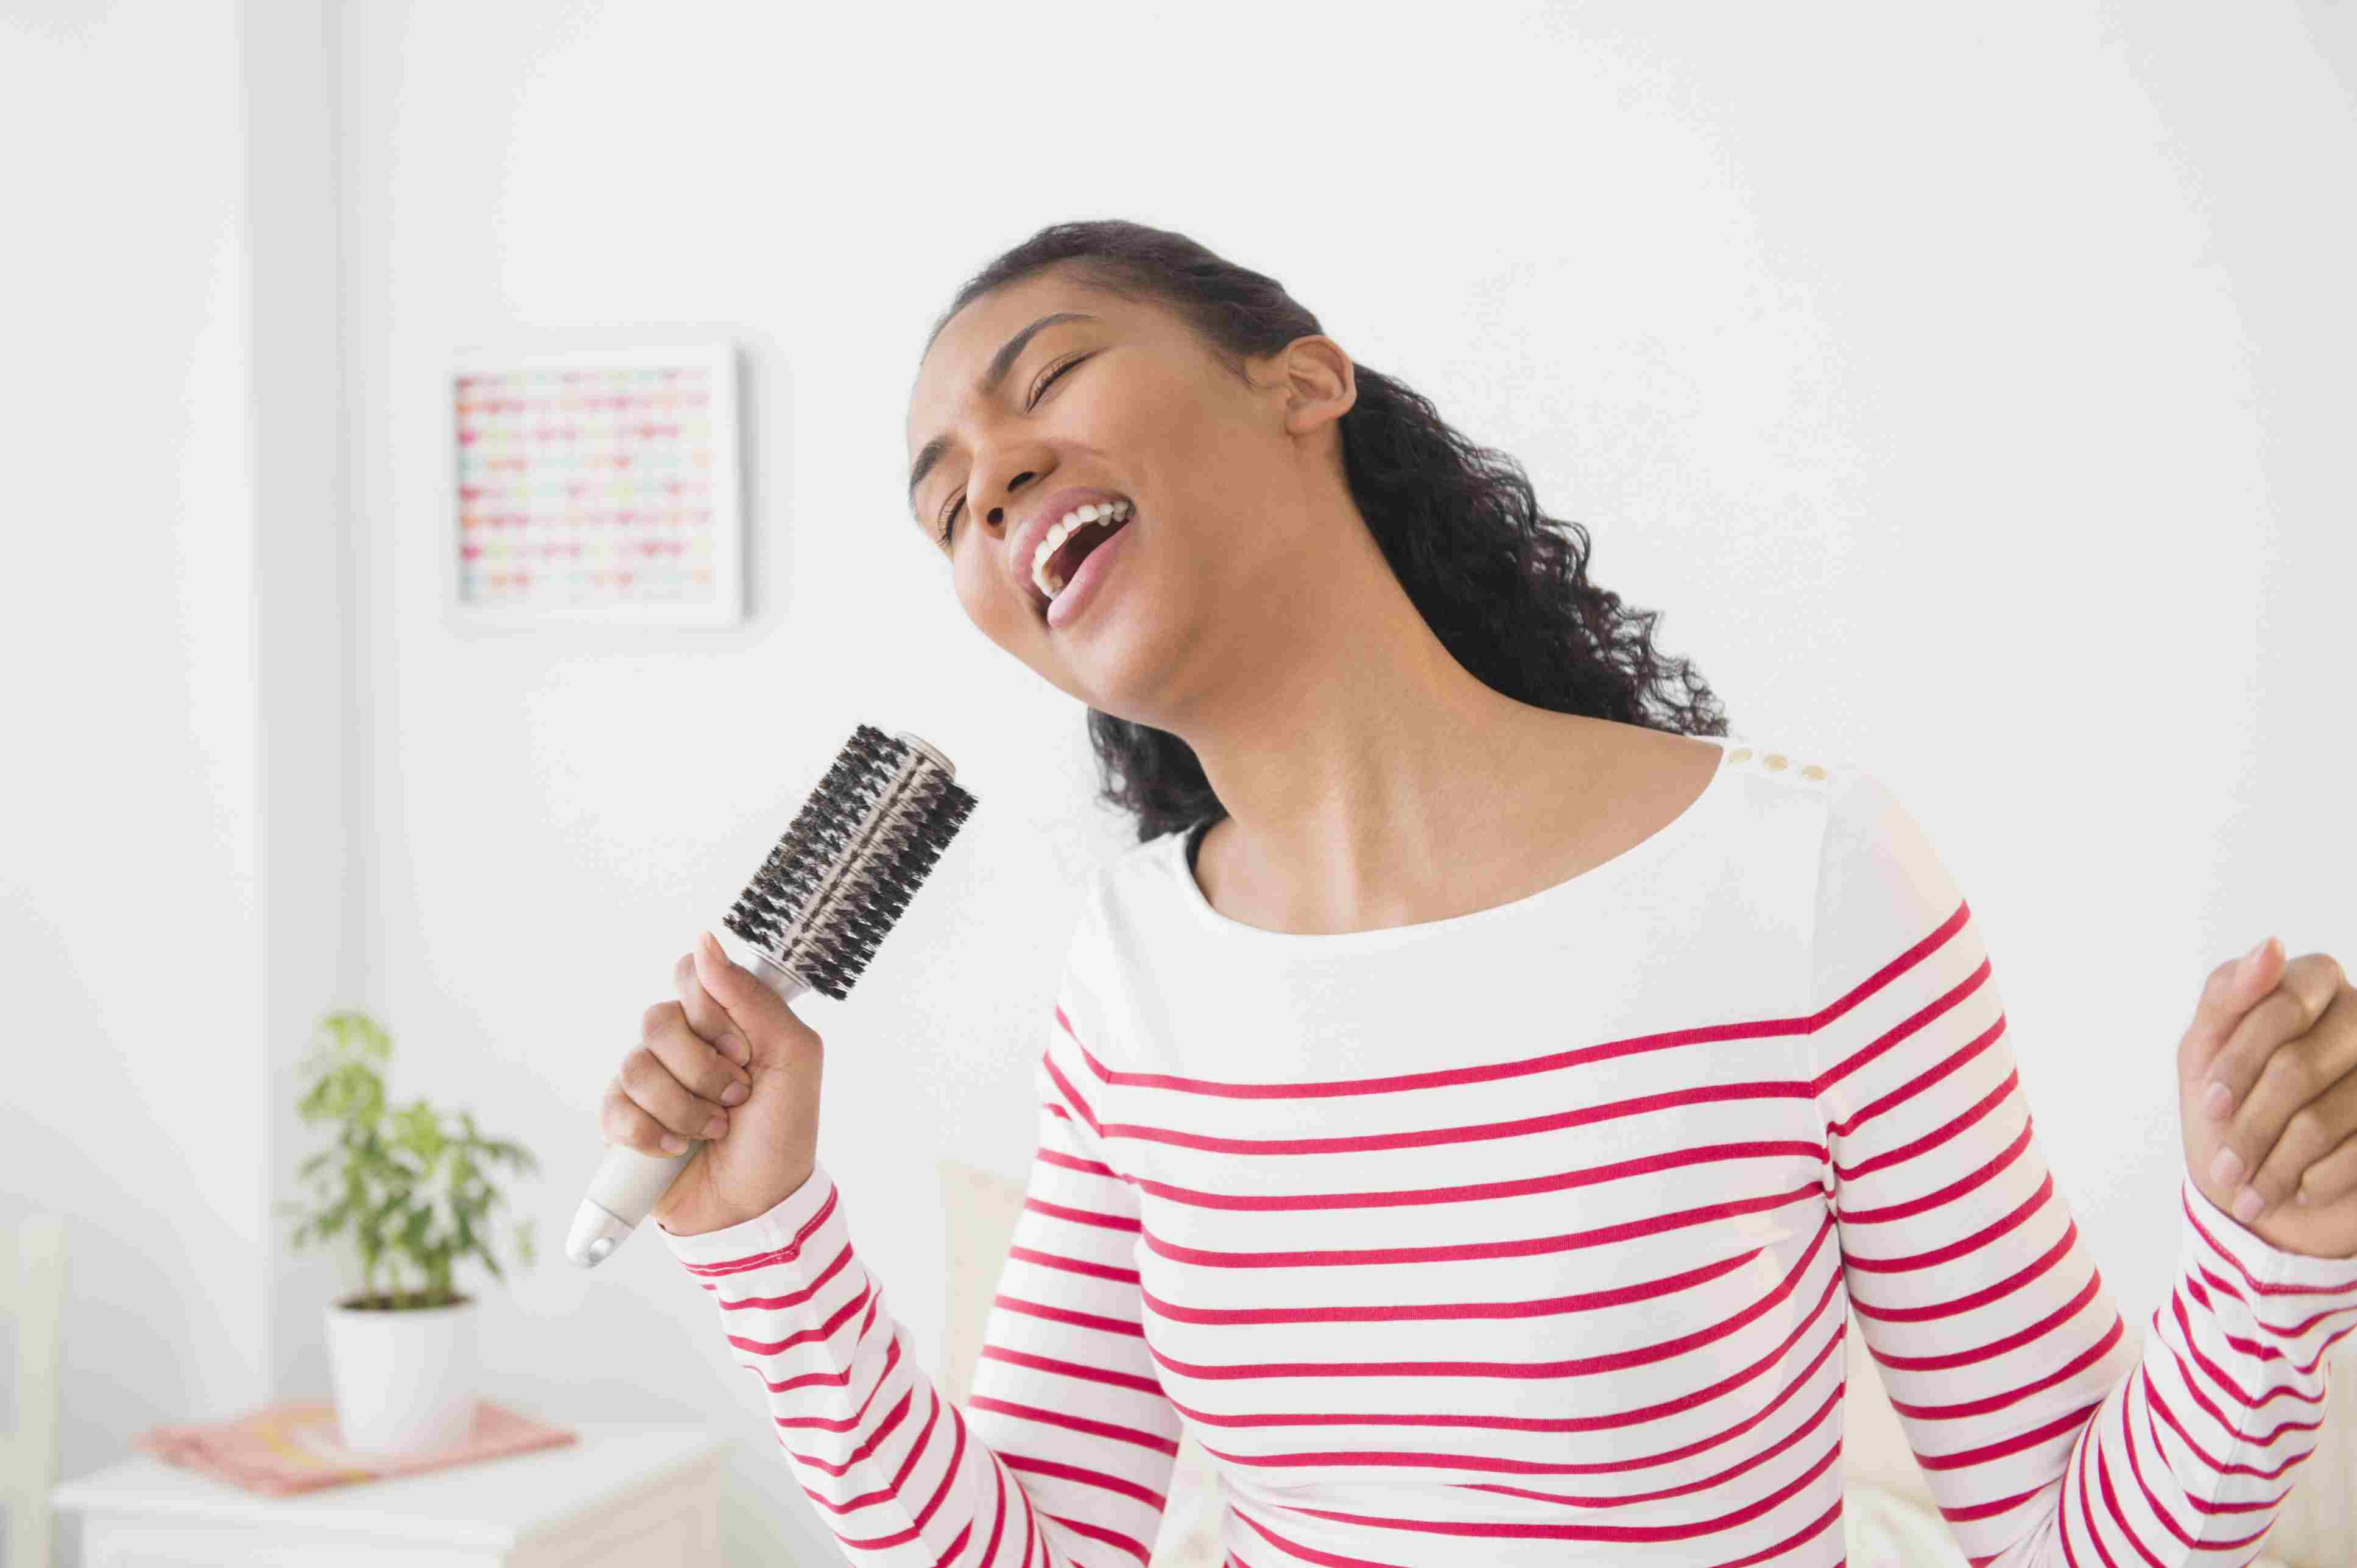 Girl singing and using a hairbrush as a microphone